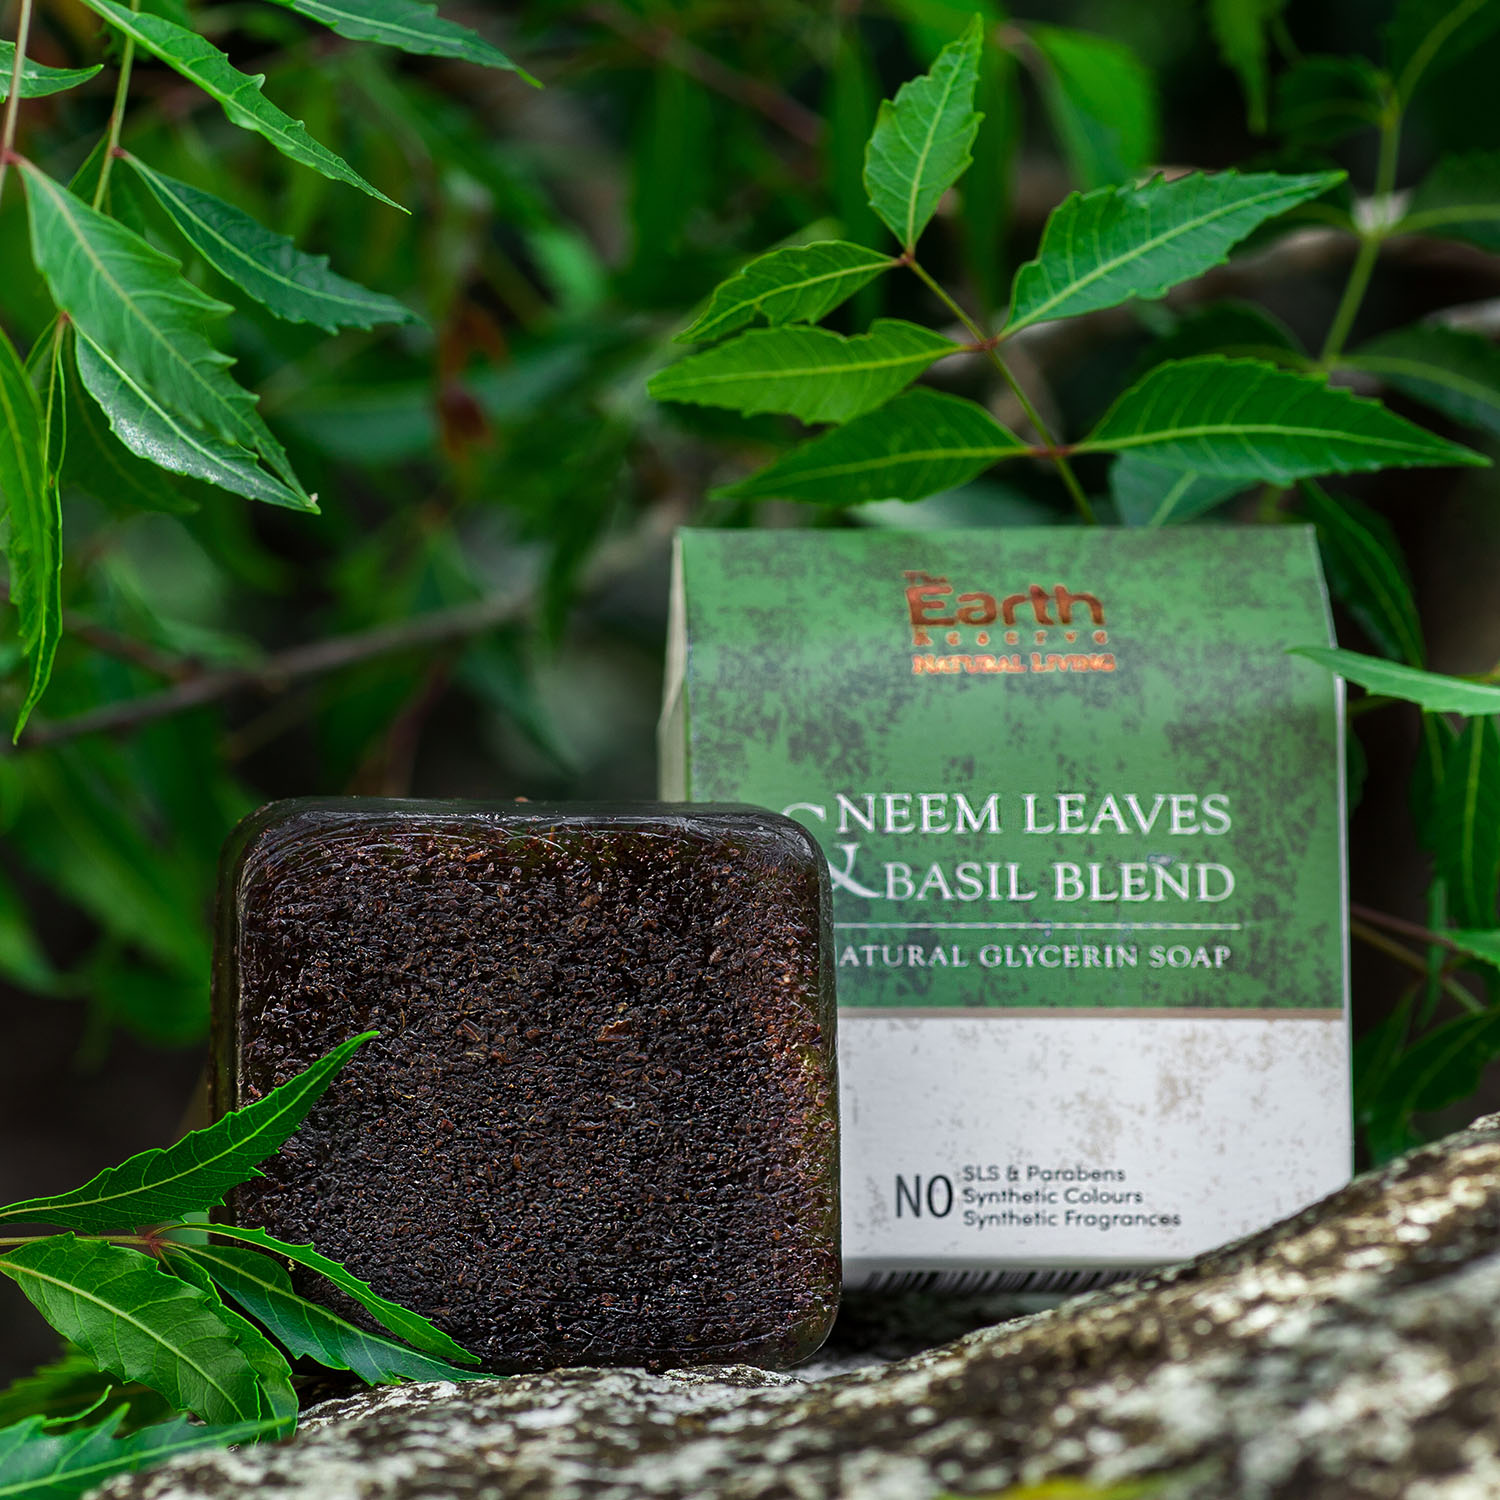 Neem Leaves and Basil Blend Natural Glycerin Soap